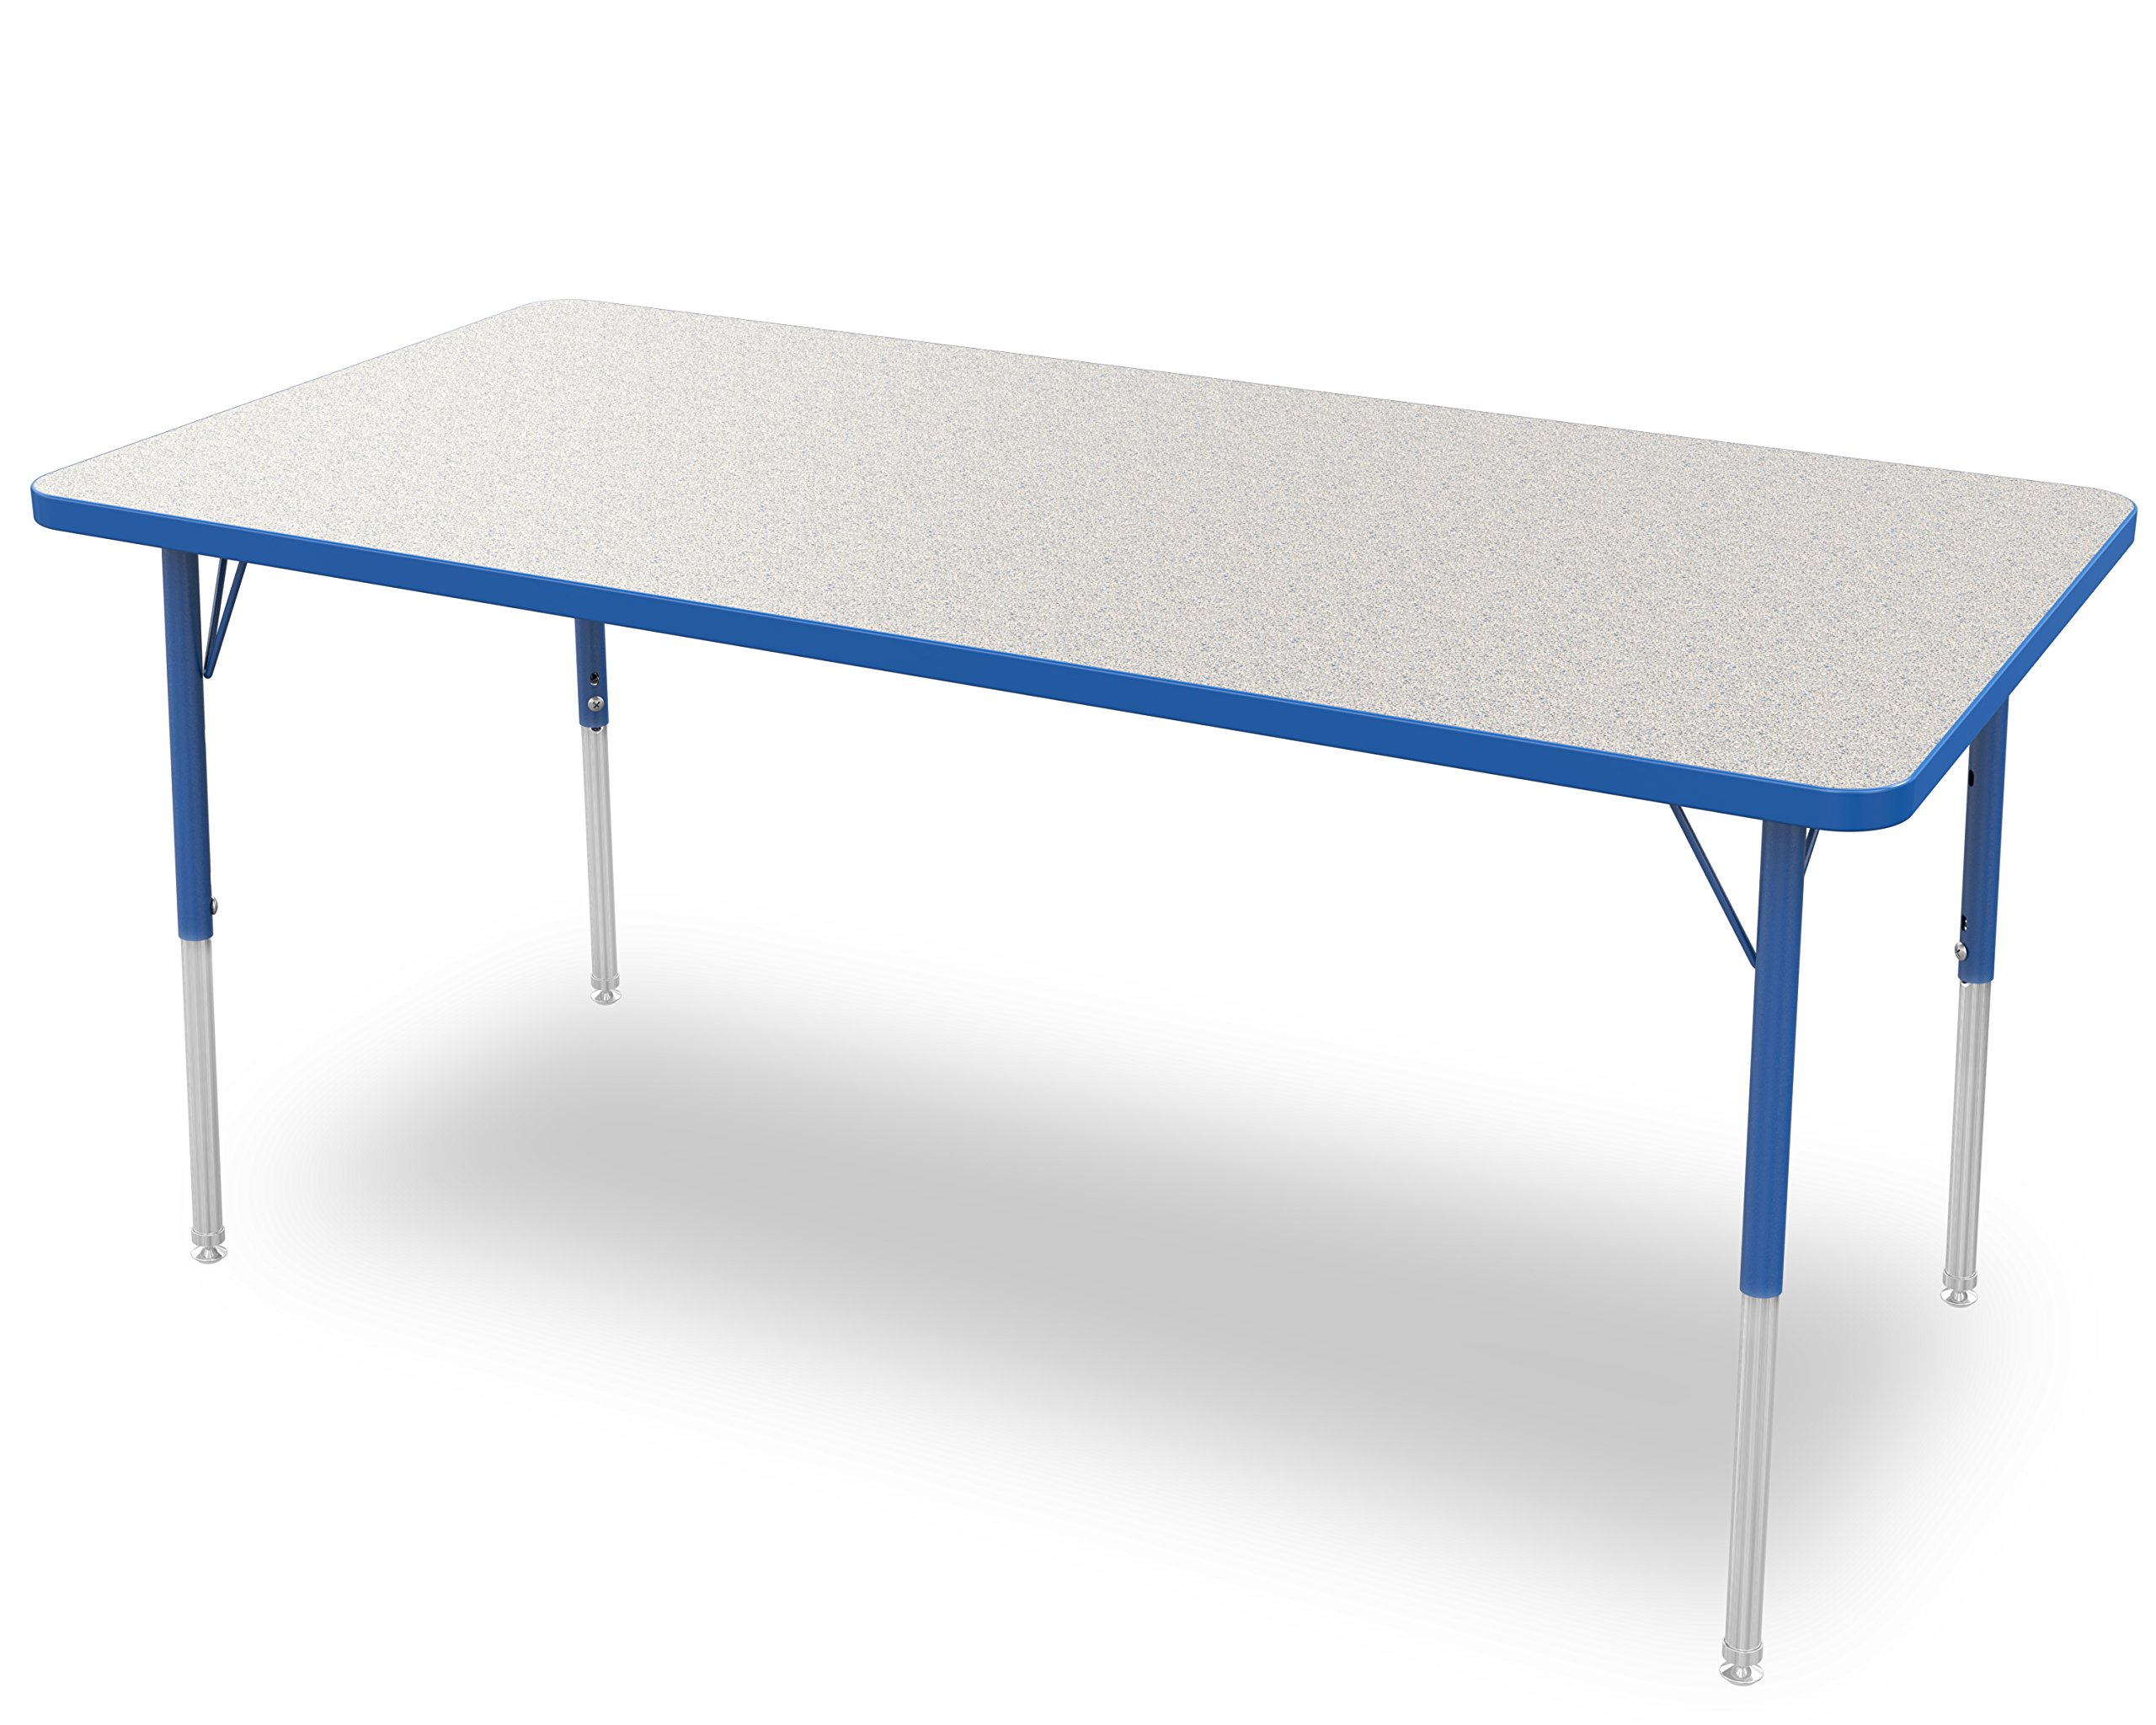 Marco Group 2200 Series Rectangle Activity Table with Swivel Glides,  Gray Glace Top/ Blue Edge and Blue Standard Legs,  30-Inch by 60-Inch